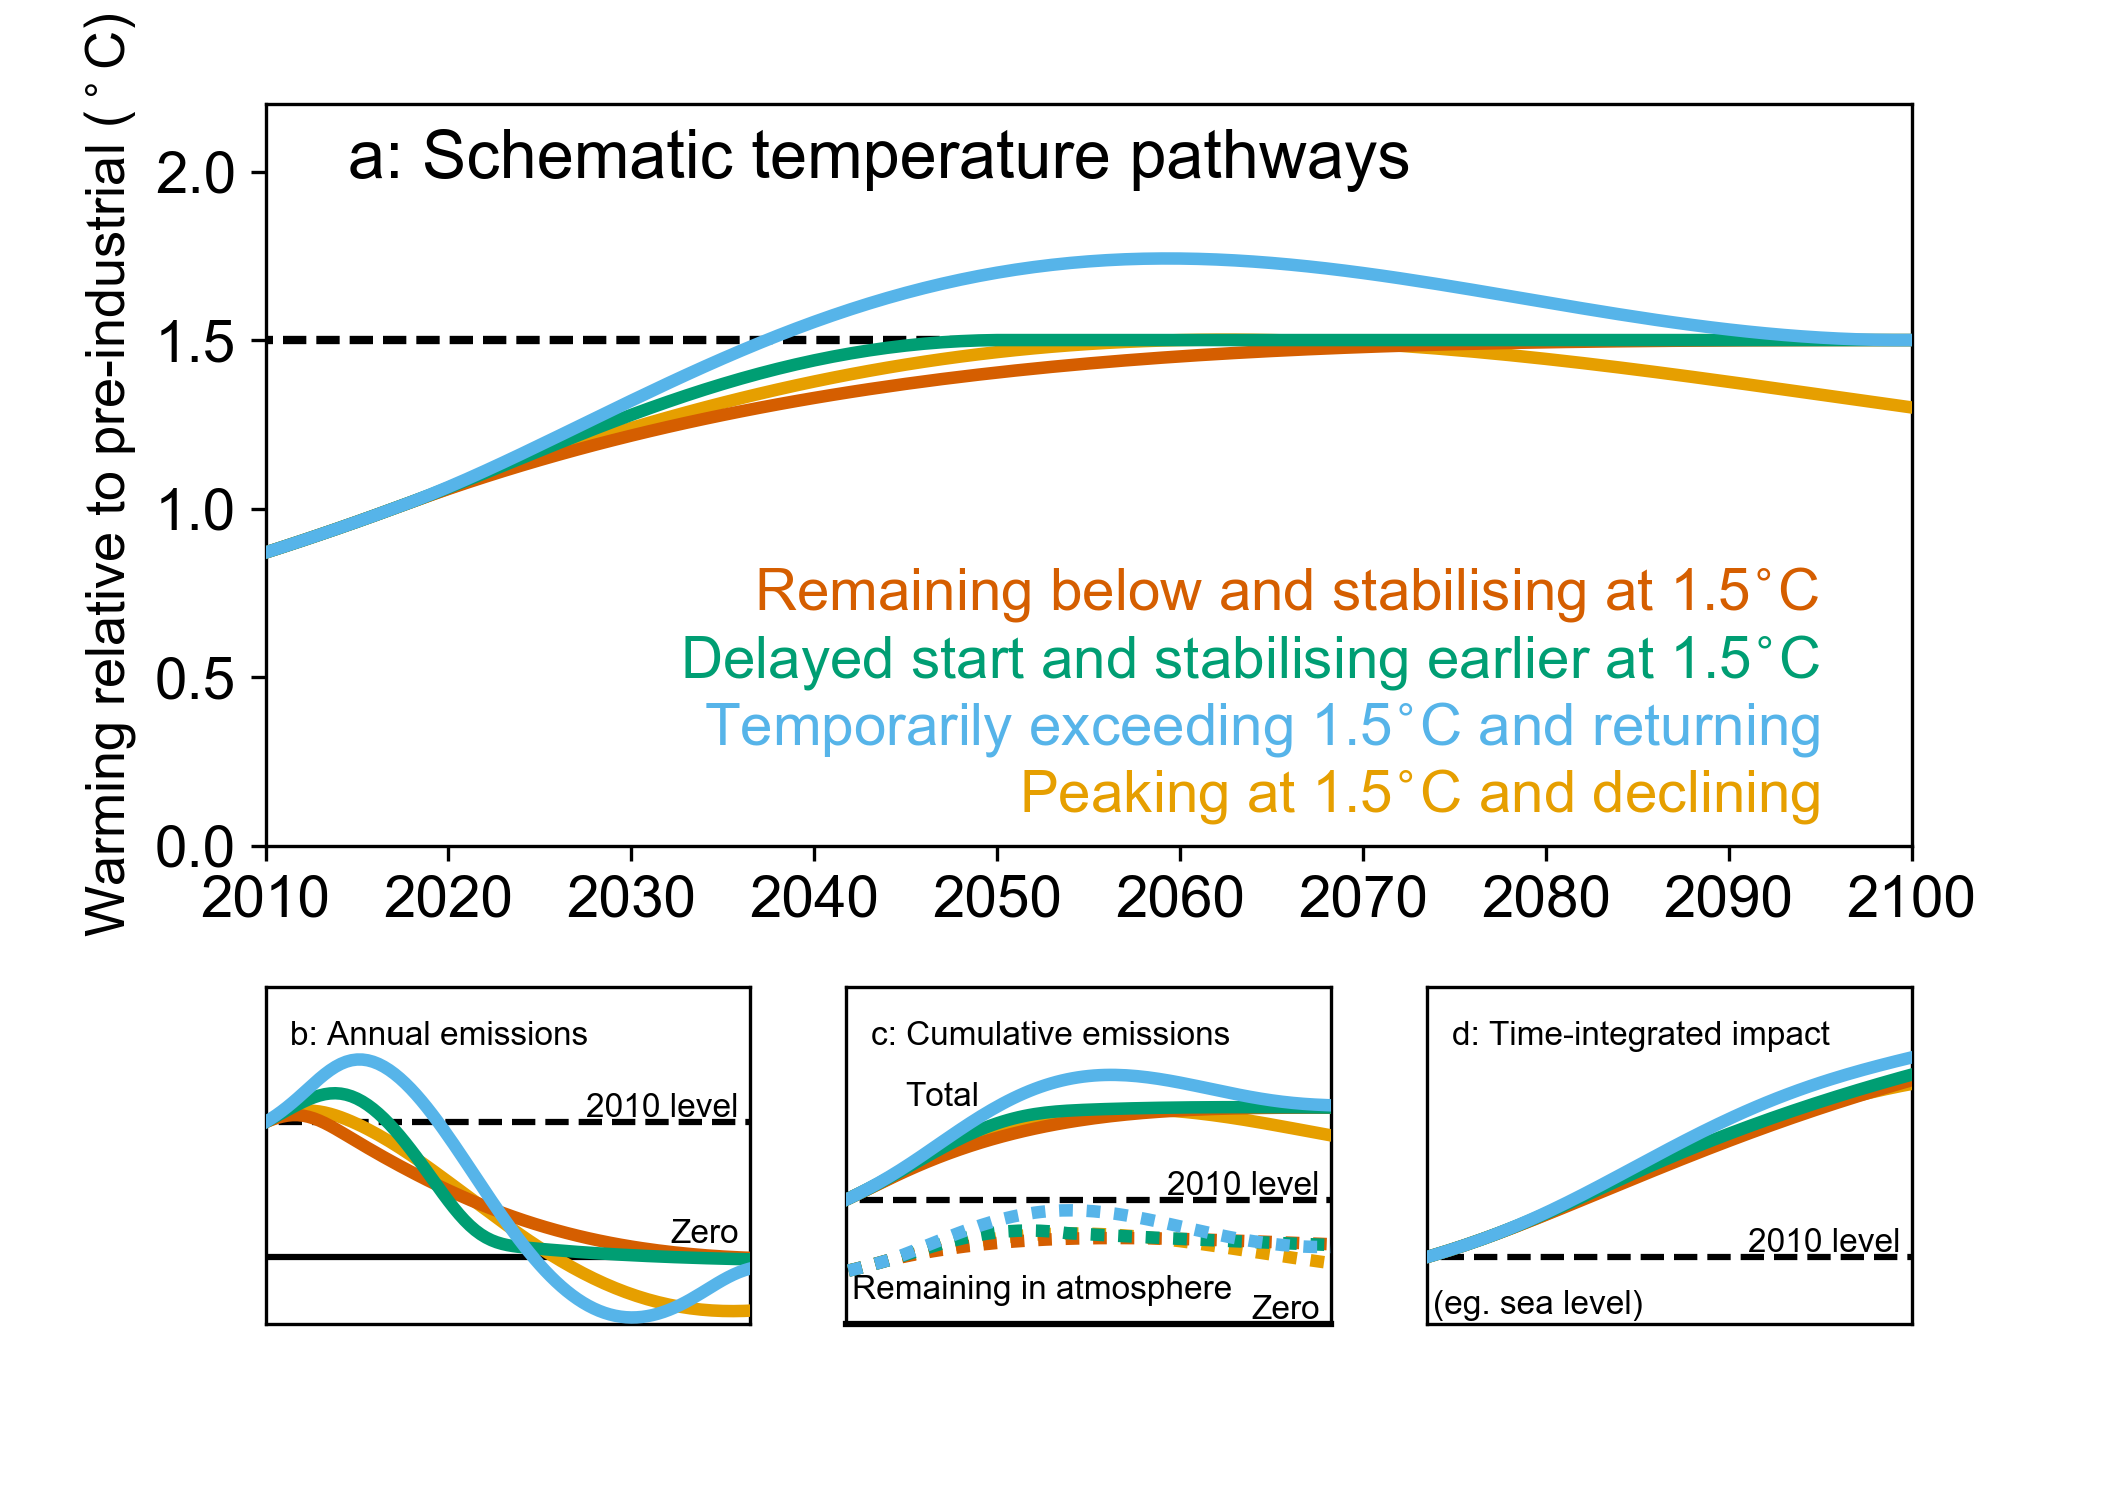 Chapter 1 — Global Warming of 1 5 ºC